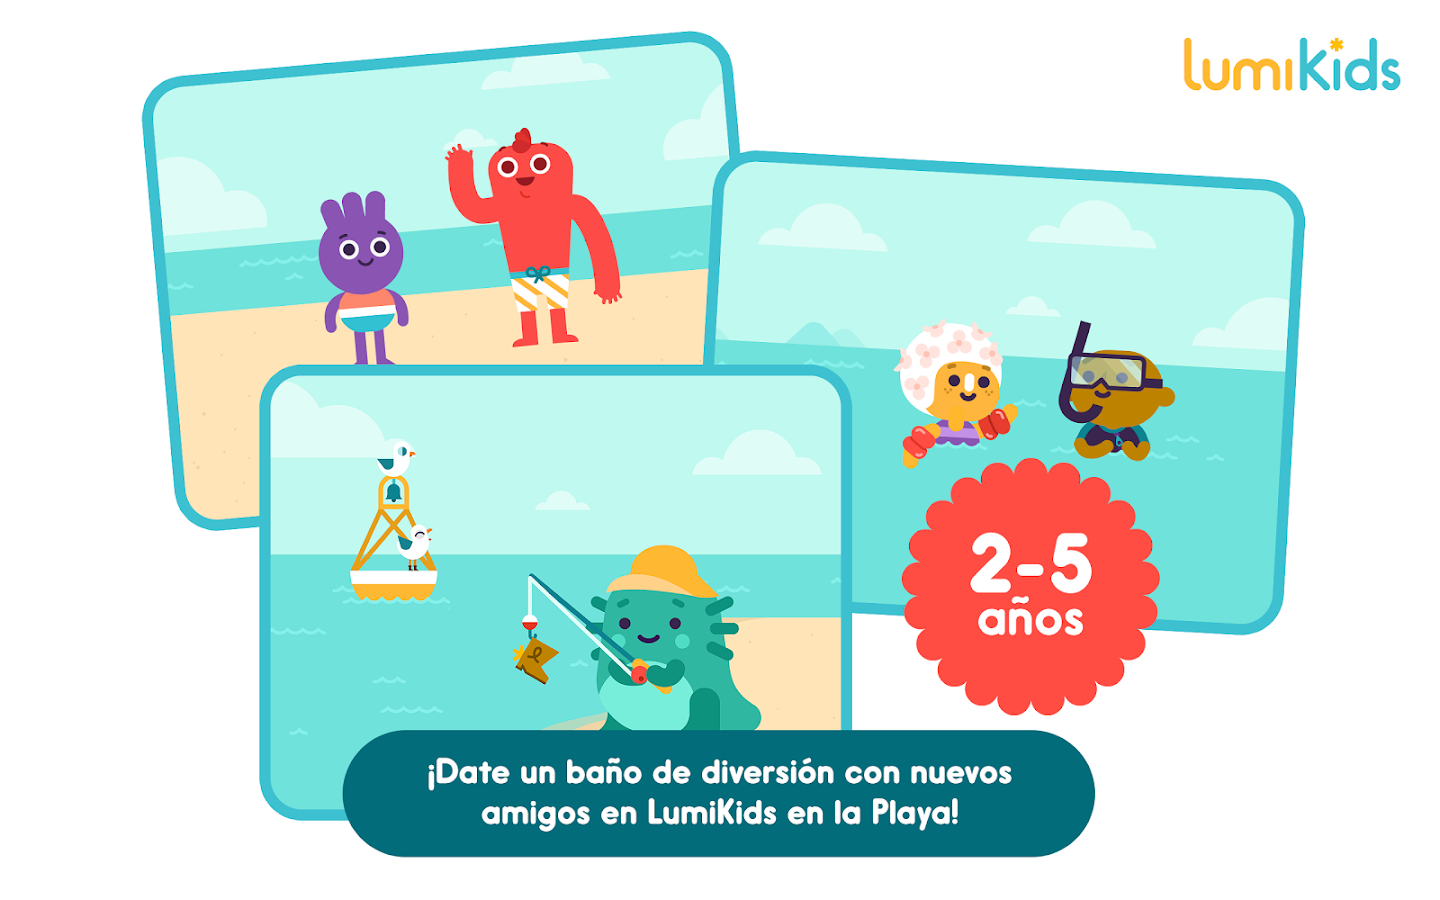 LumiKids en la Playa: captura de pantalla